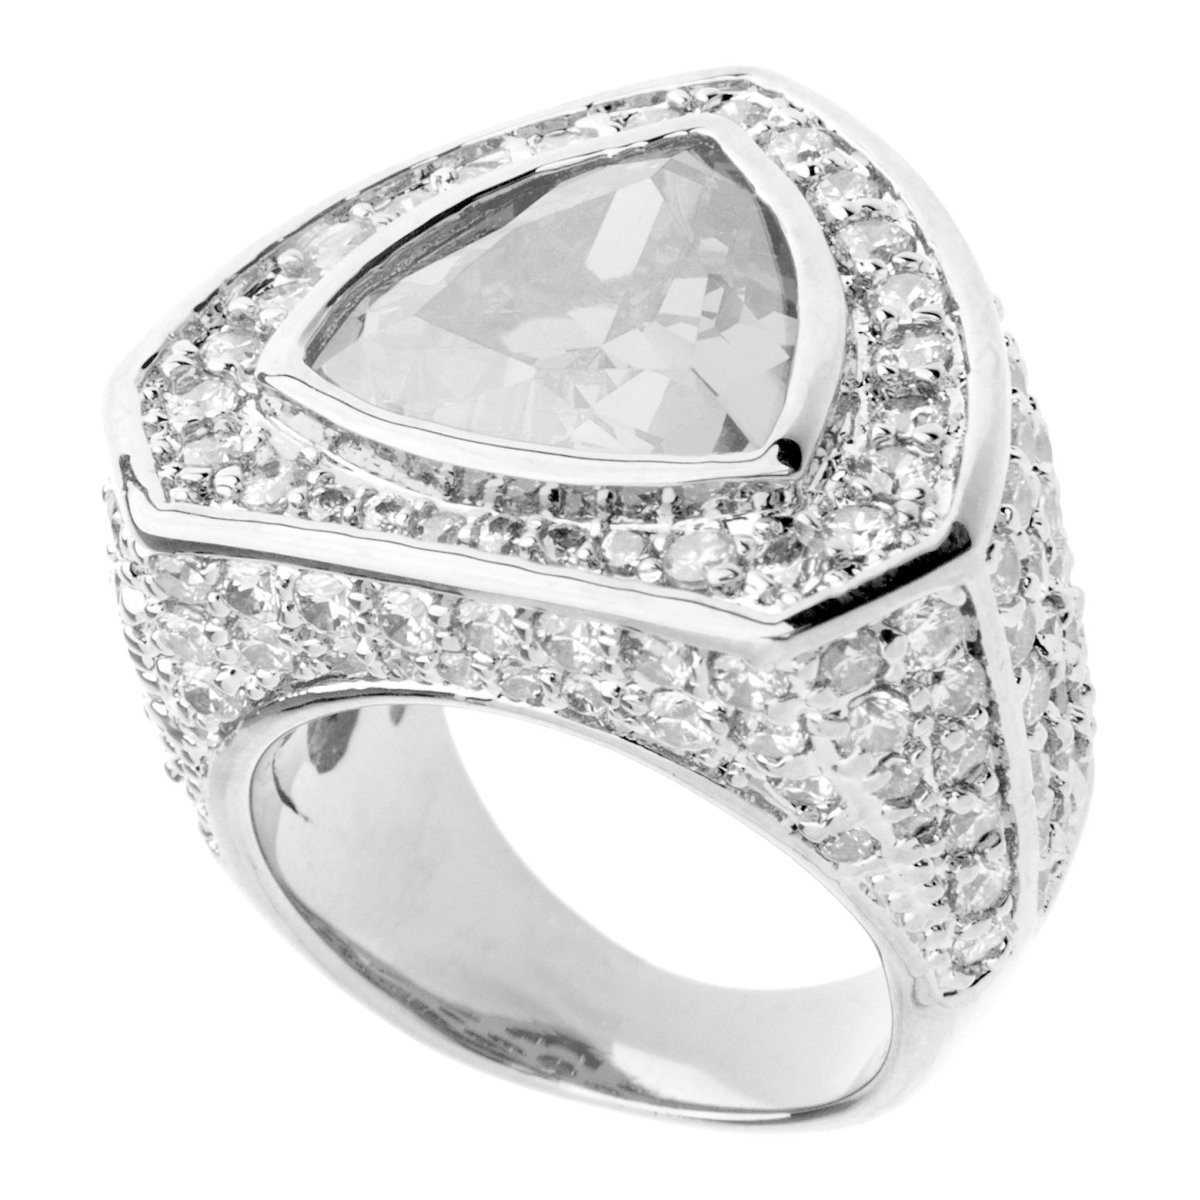 Iced Out Bling Micro Pave Ring - TRILLION Silver - 10